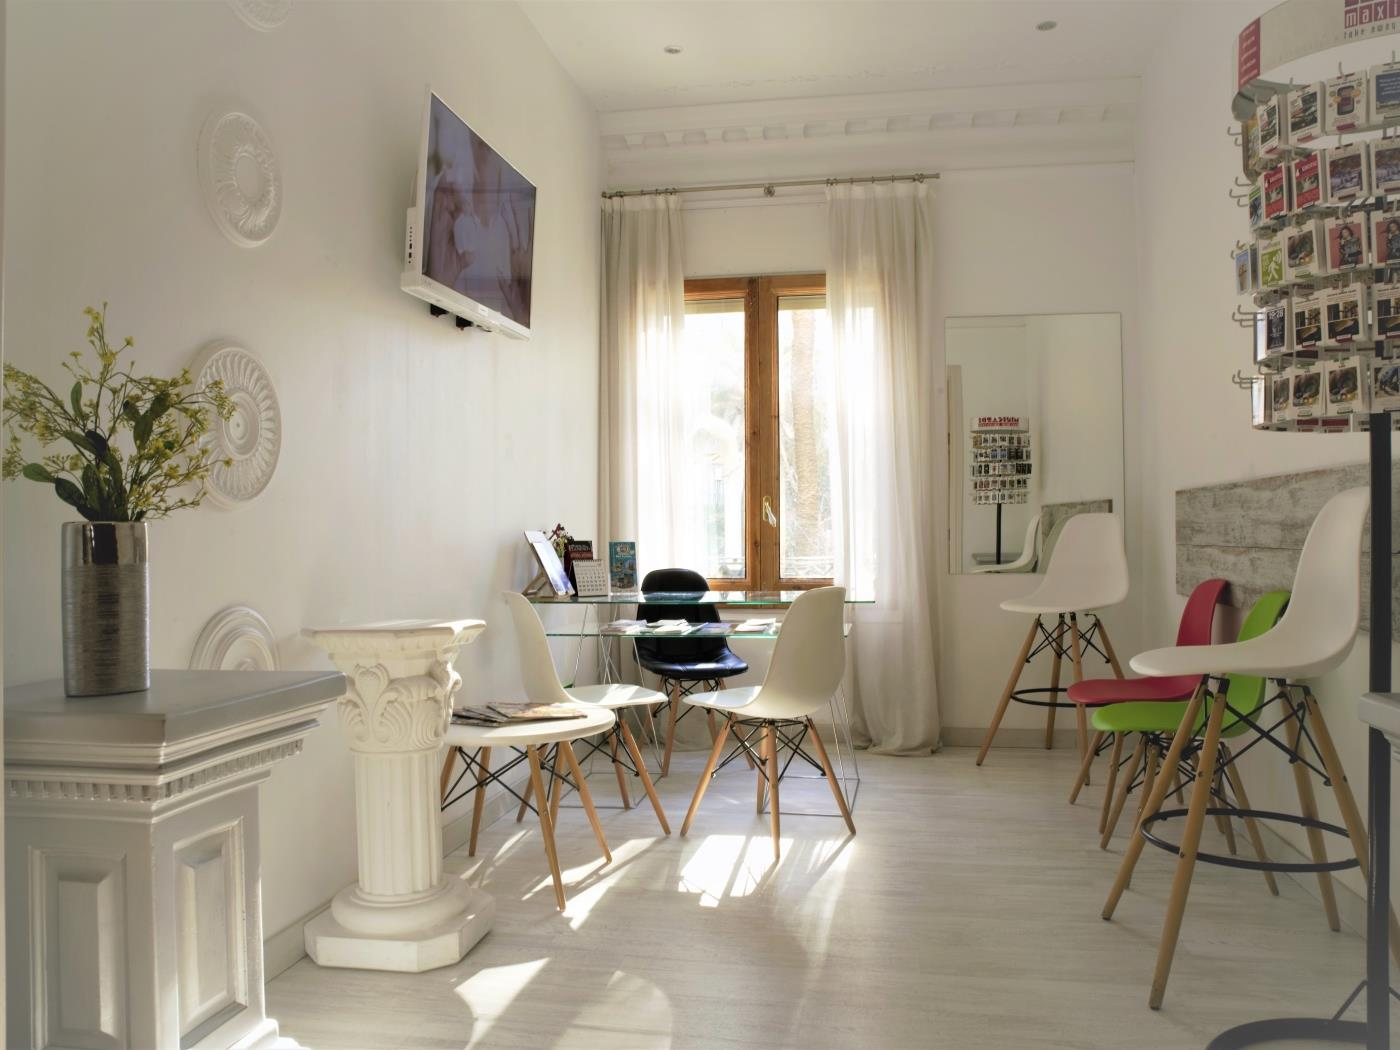 City Center Diagonal spacious room in the best area for 4 - My Space Barcelona Appartementen